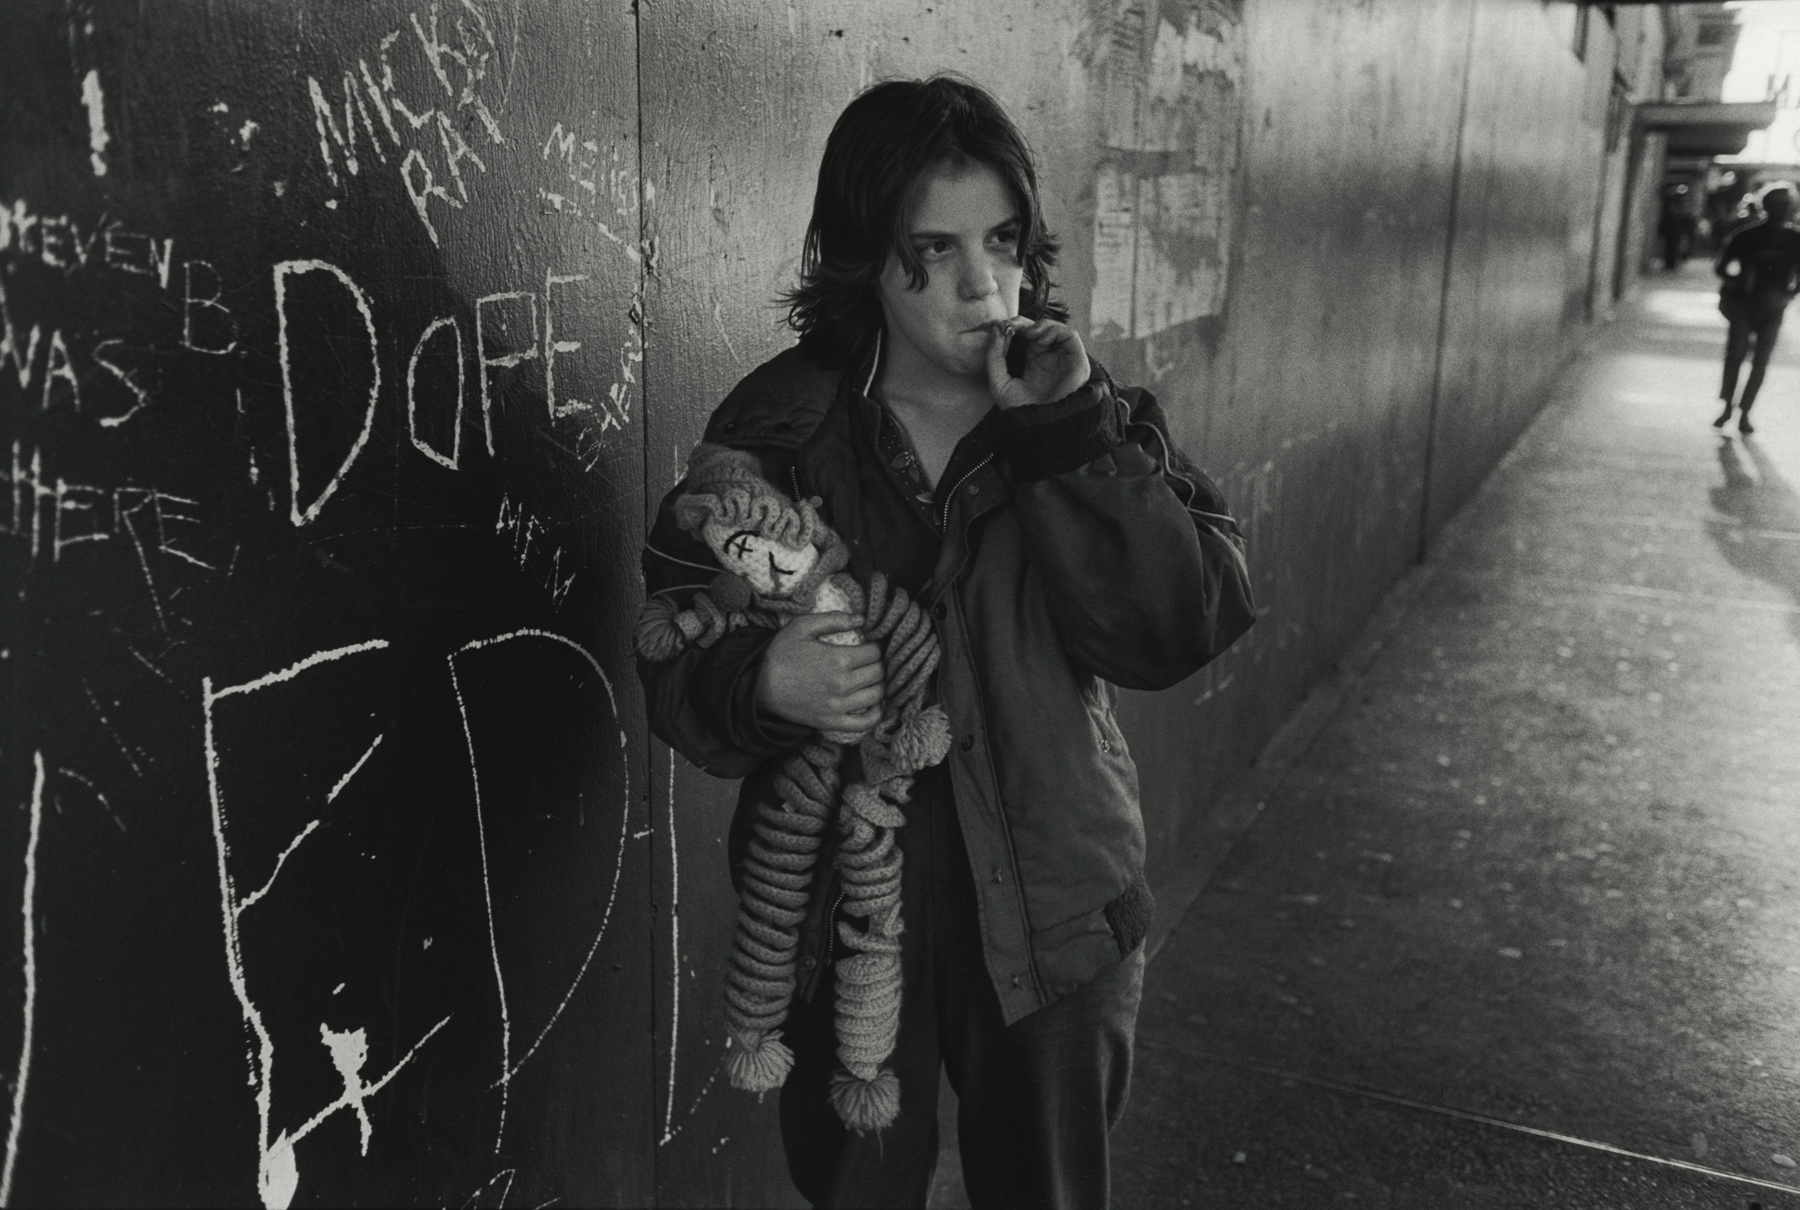 Lillie with her rag doll. Seattle, Washington From the series Streetwise, 1983 © Mary Ellen Mark/ Courtesy Howard Greenberg Gallery New York